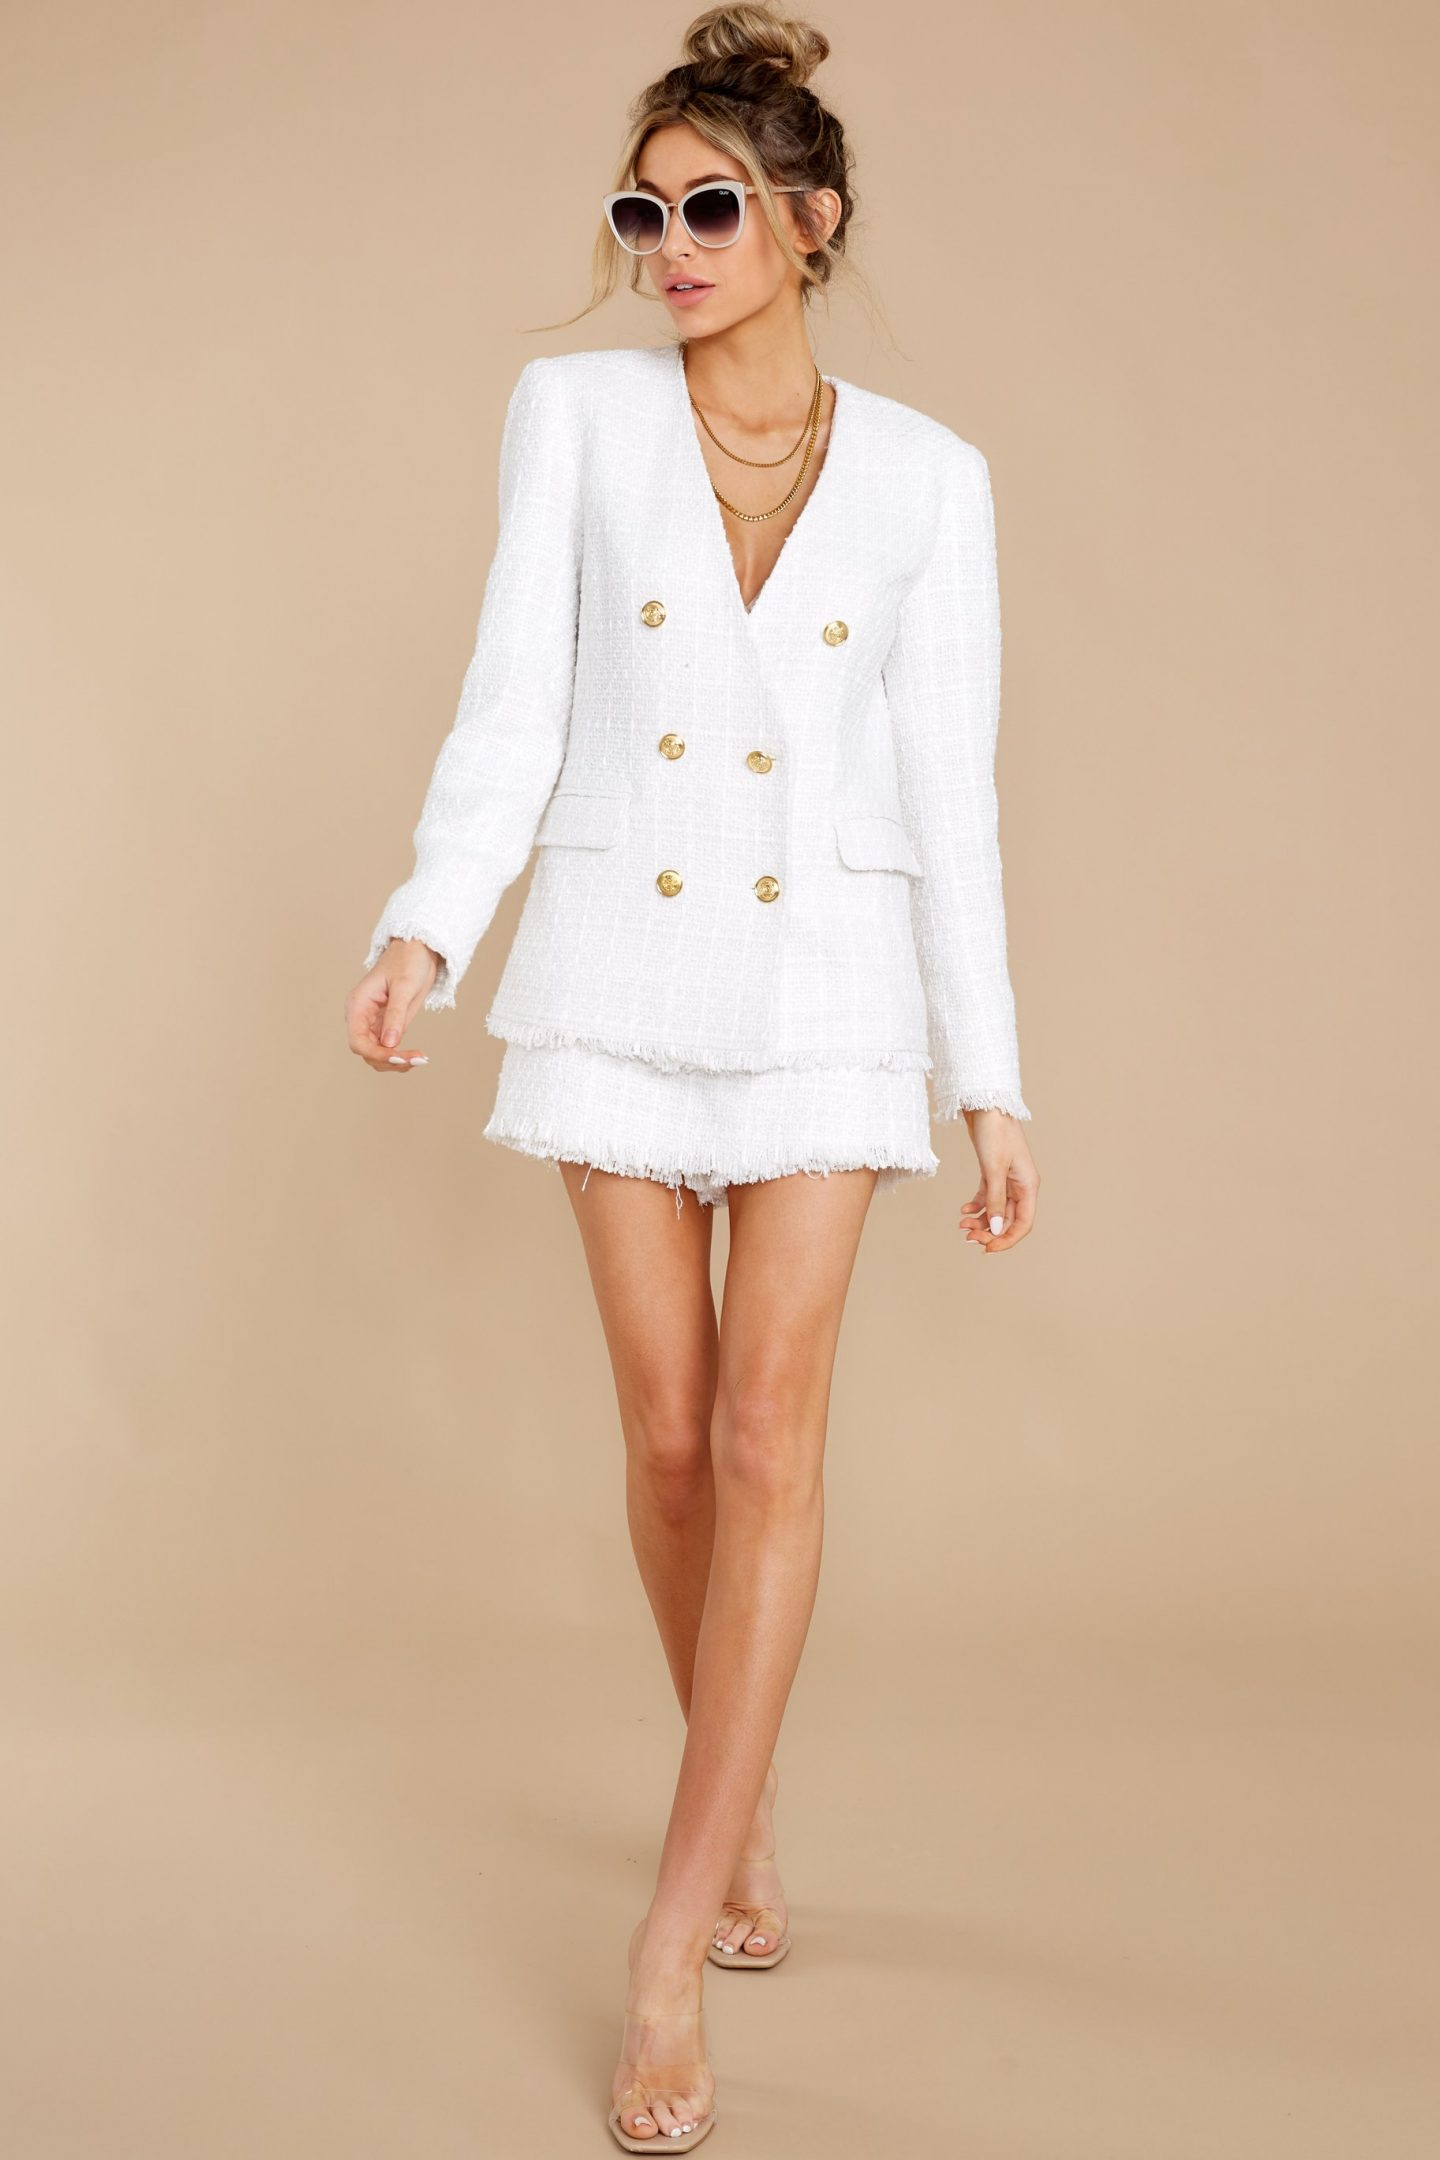 Compatible with white blazer and skirt